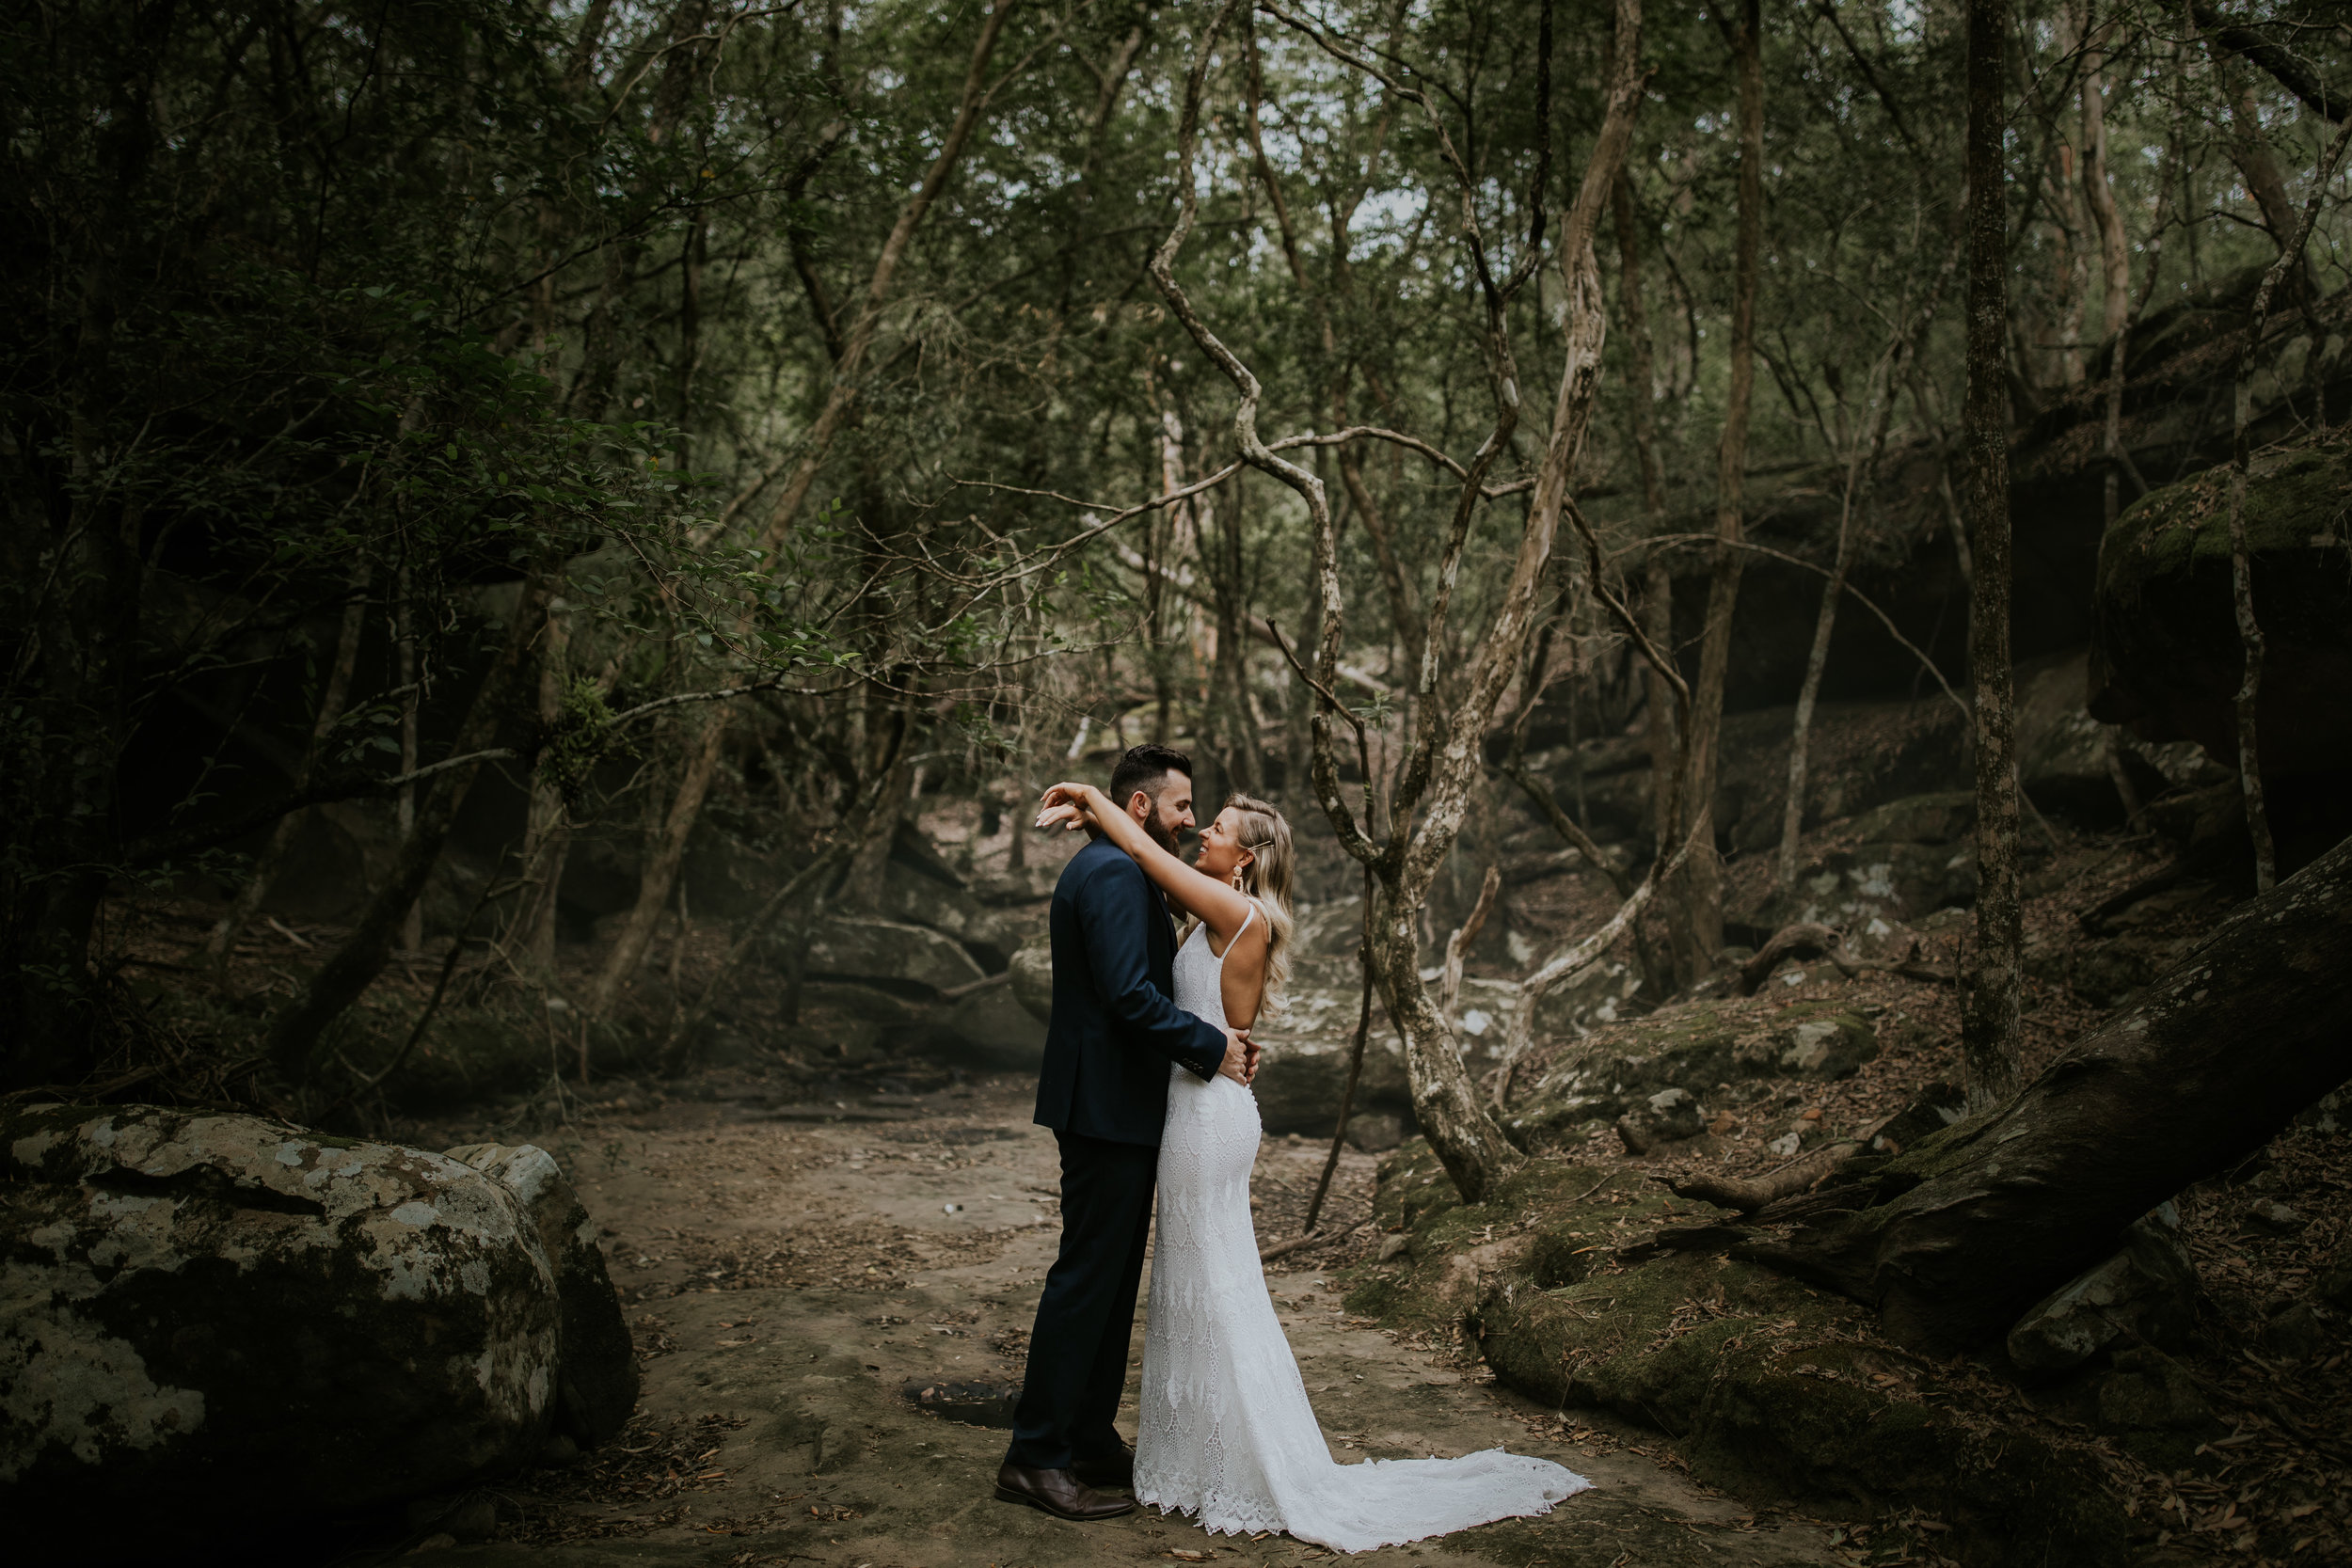 Liana + Martin - Relaxed Wildwood Kangaroo Valley Wedding